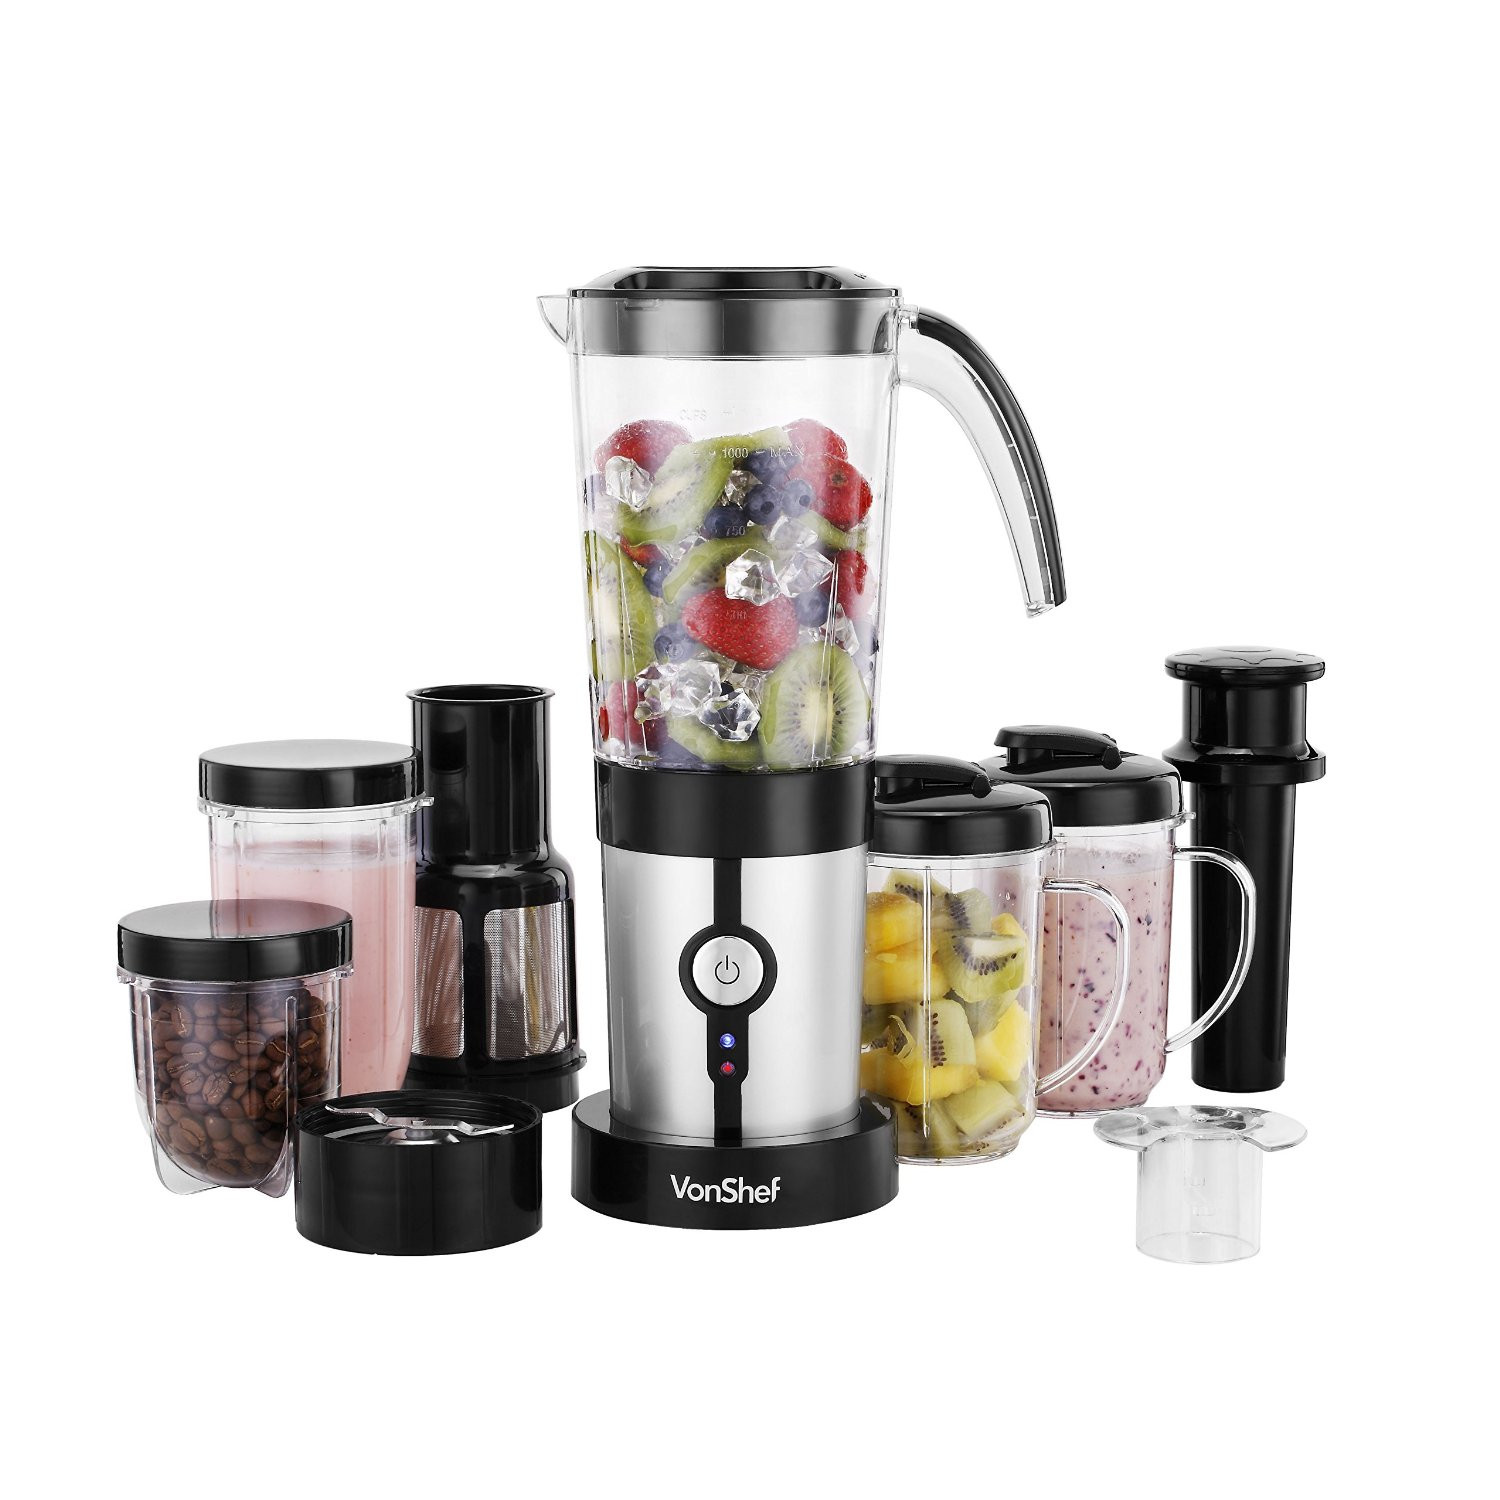 Blender For Smoothies  15 Best Smoothie Makers & Blenders for Delicious Smoothies